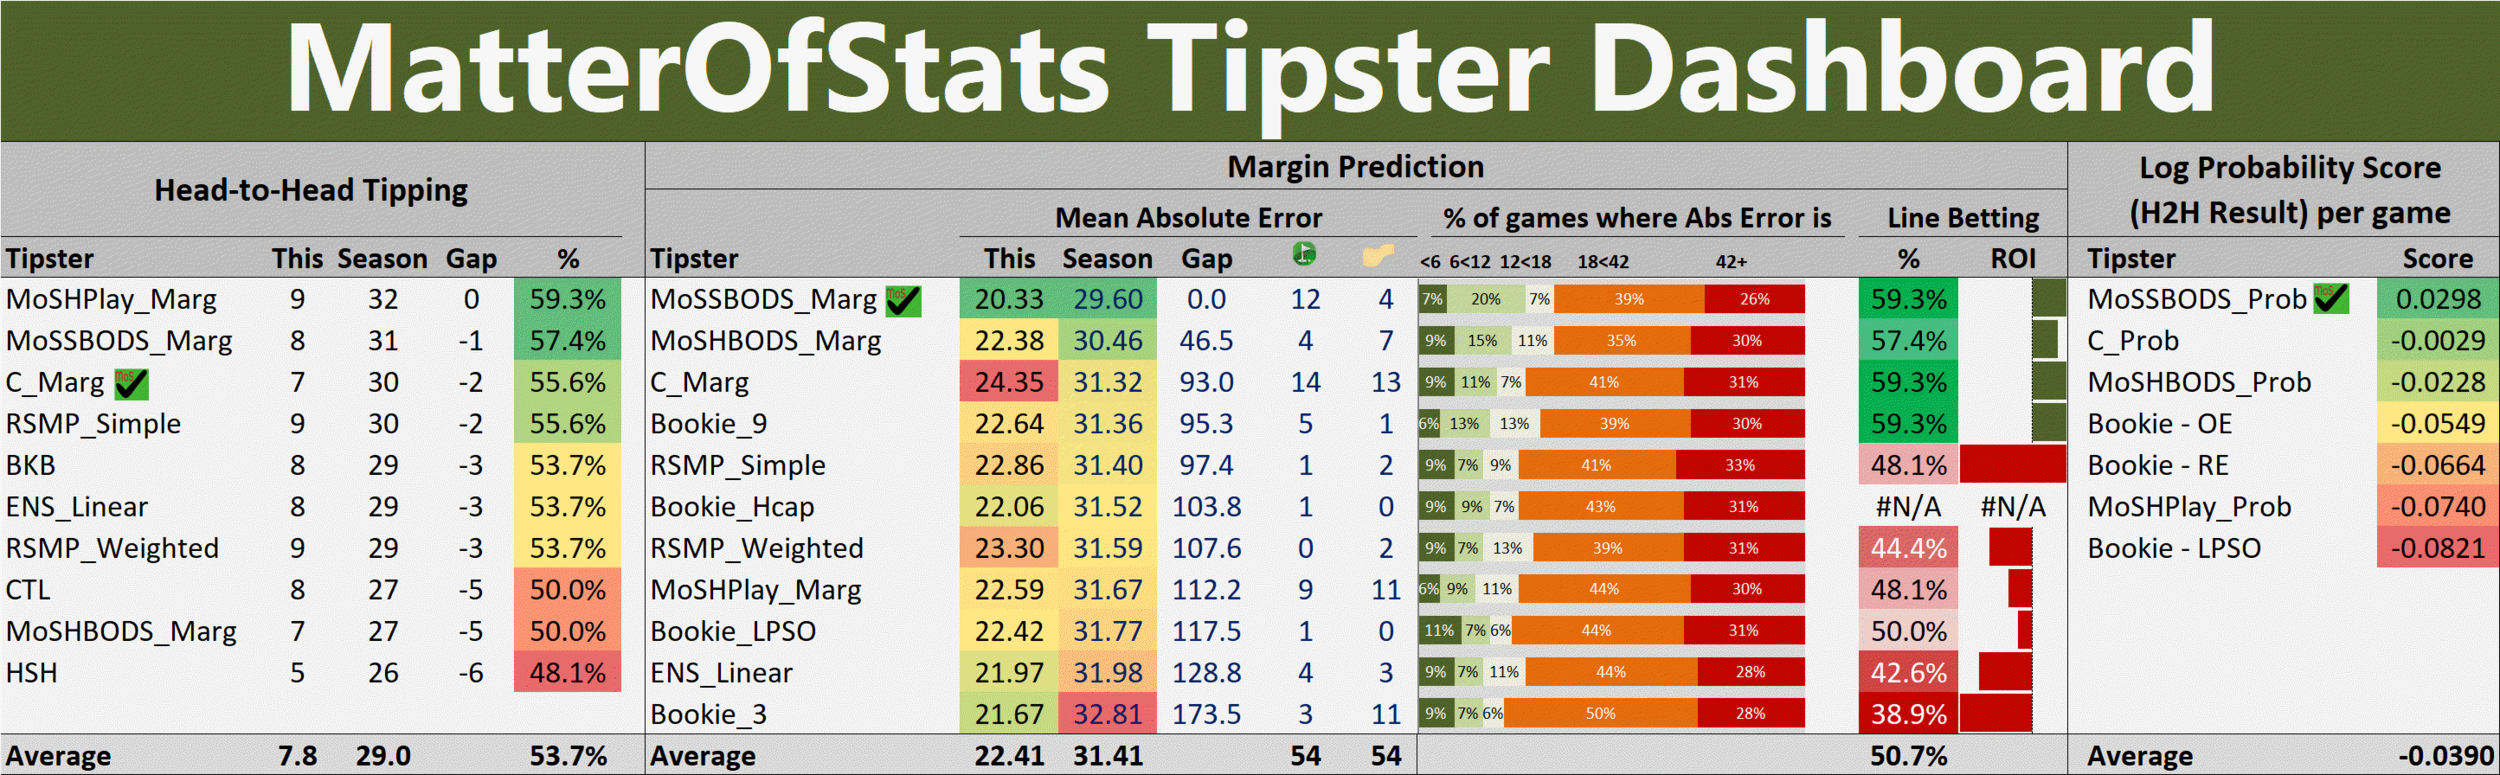 R6 - Tipster Dashboard.png